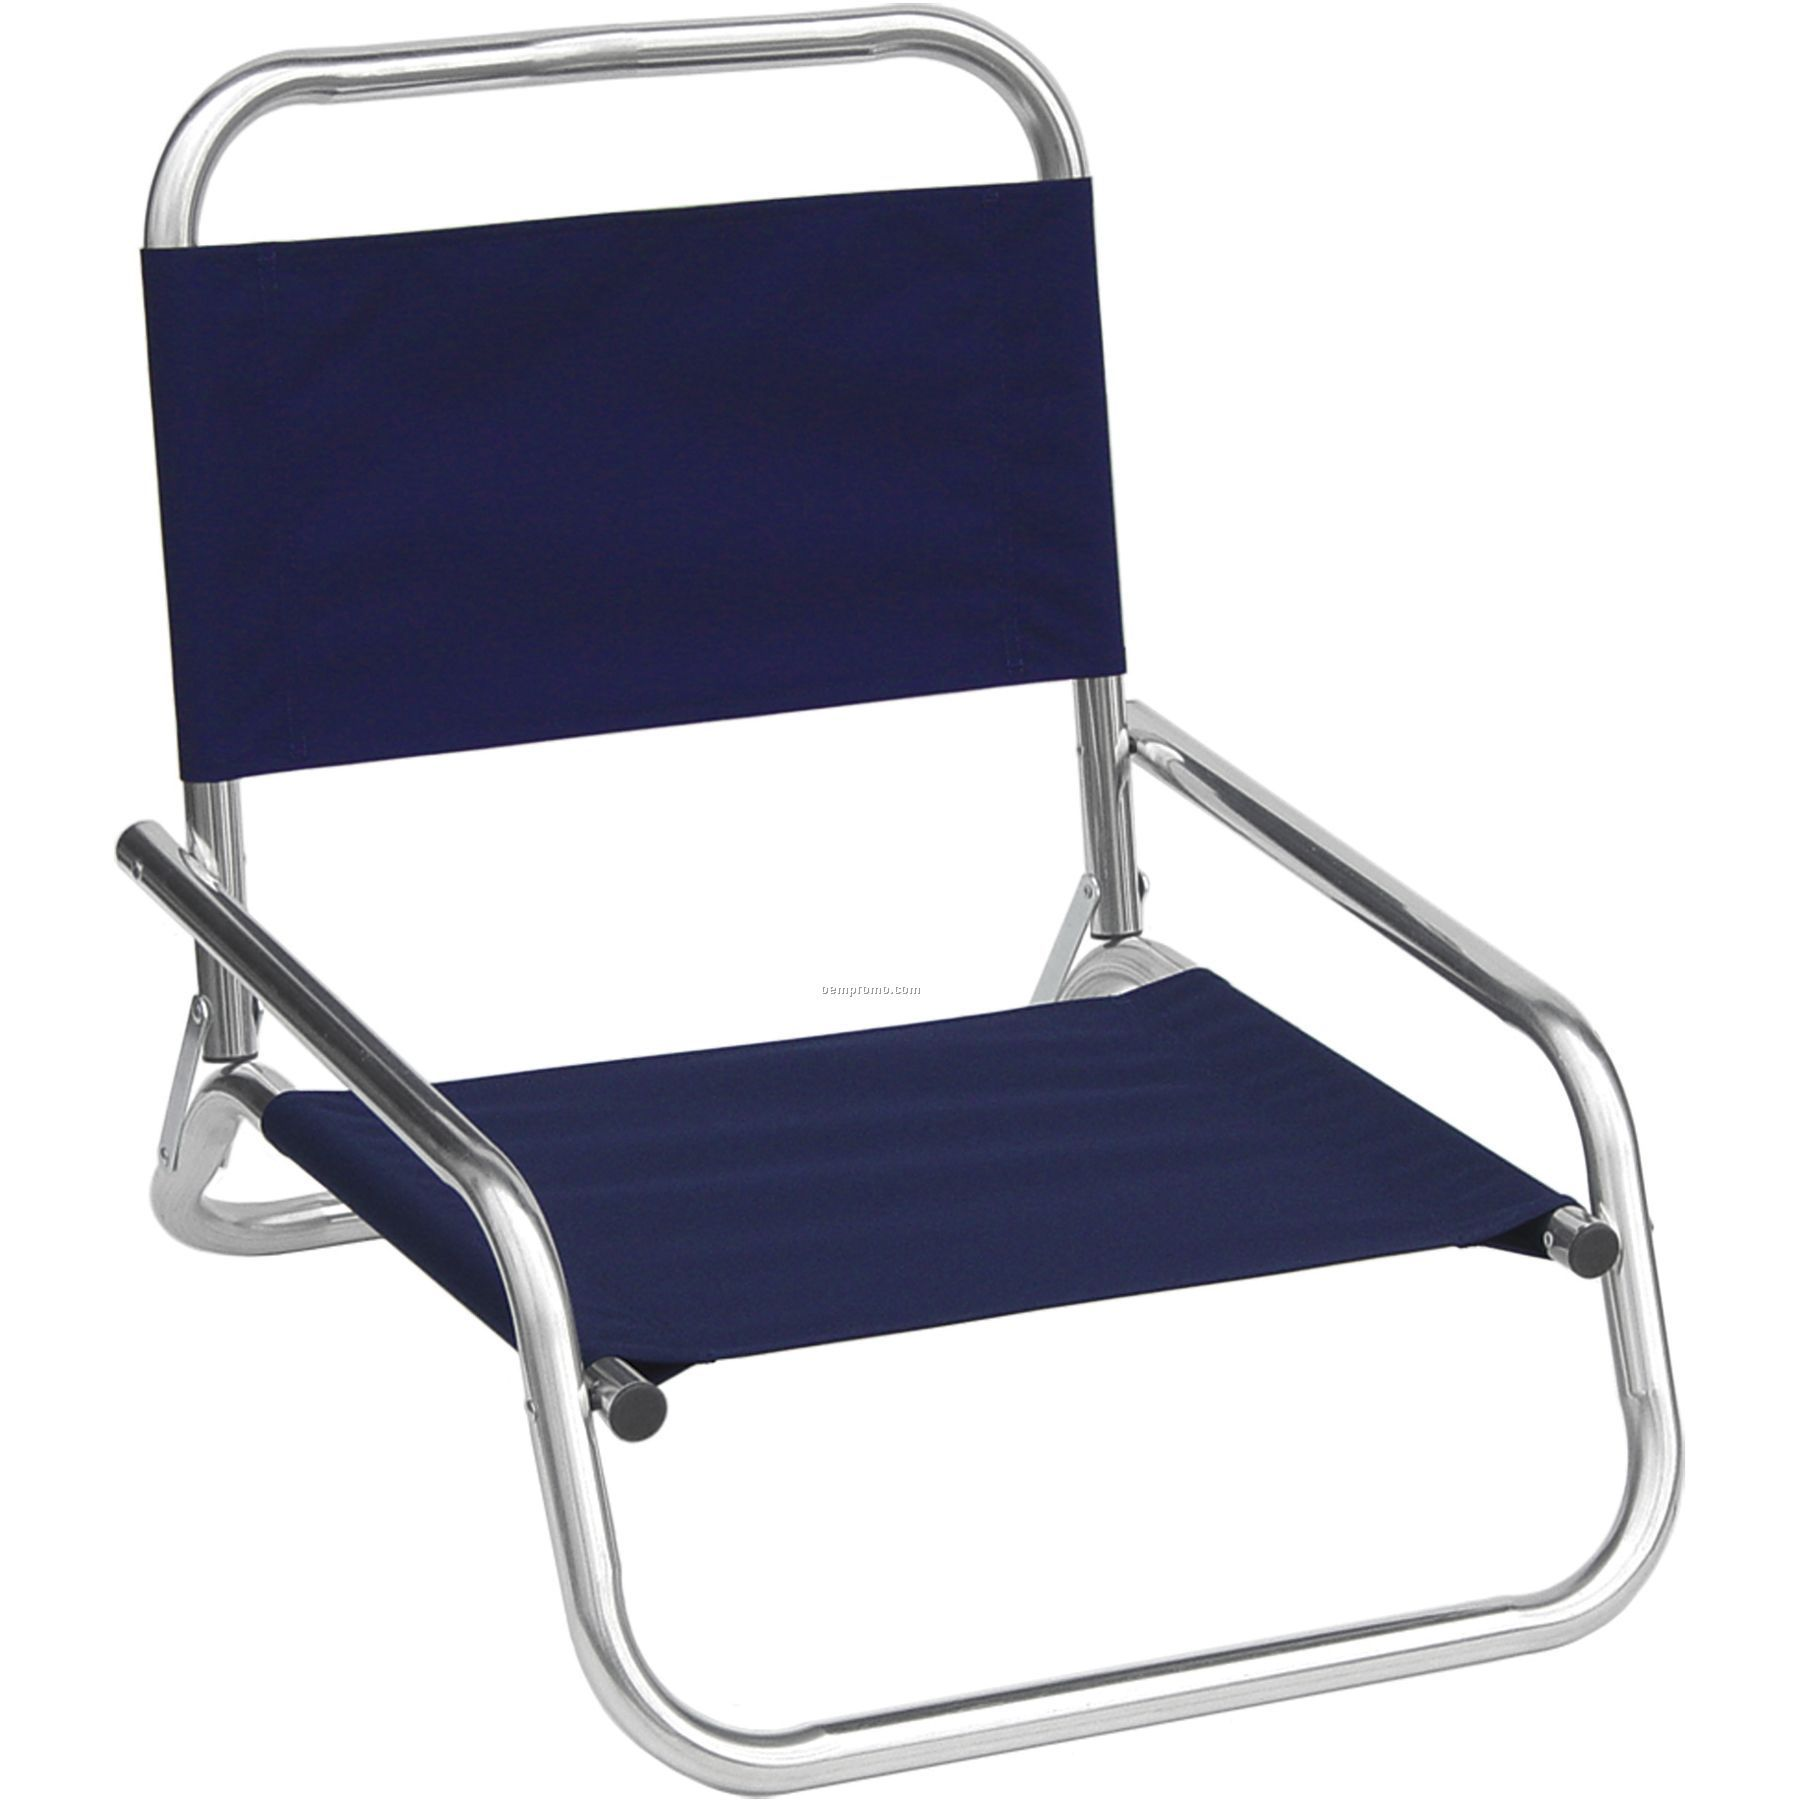 Ideal Low Folding Beach Chair , Low Price Folding Beach Chair ...